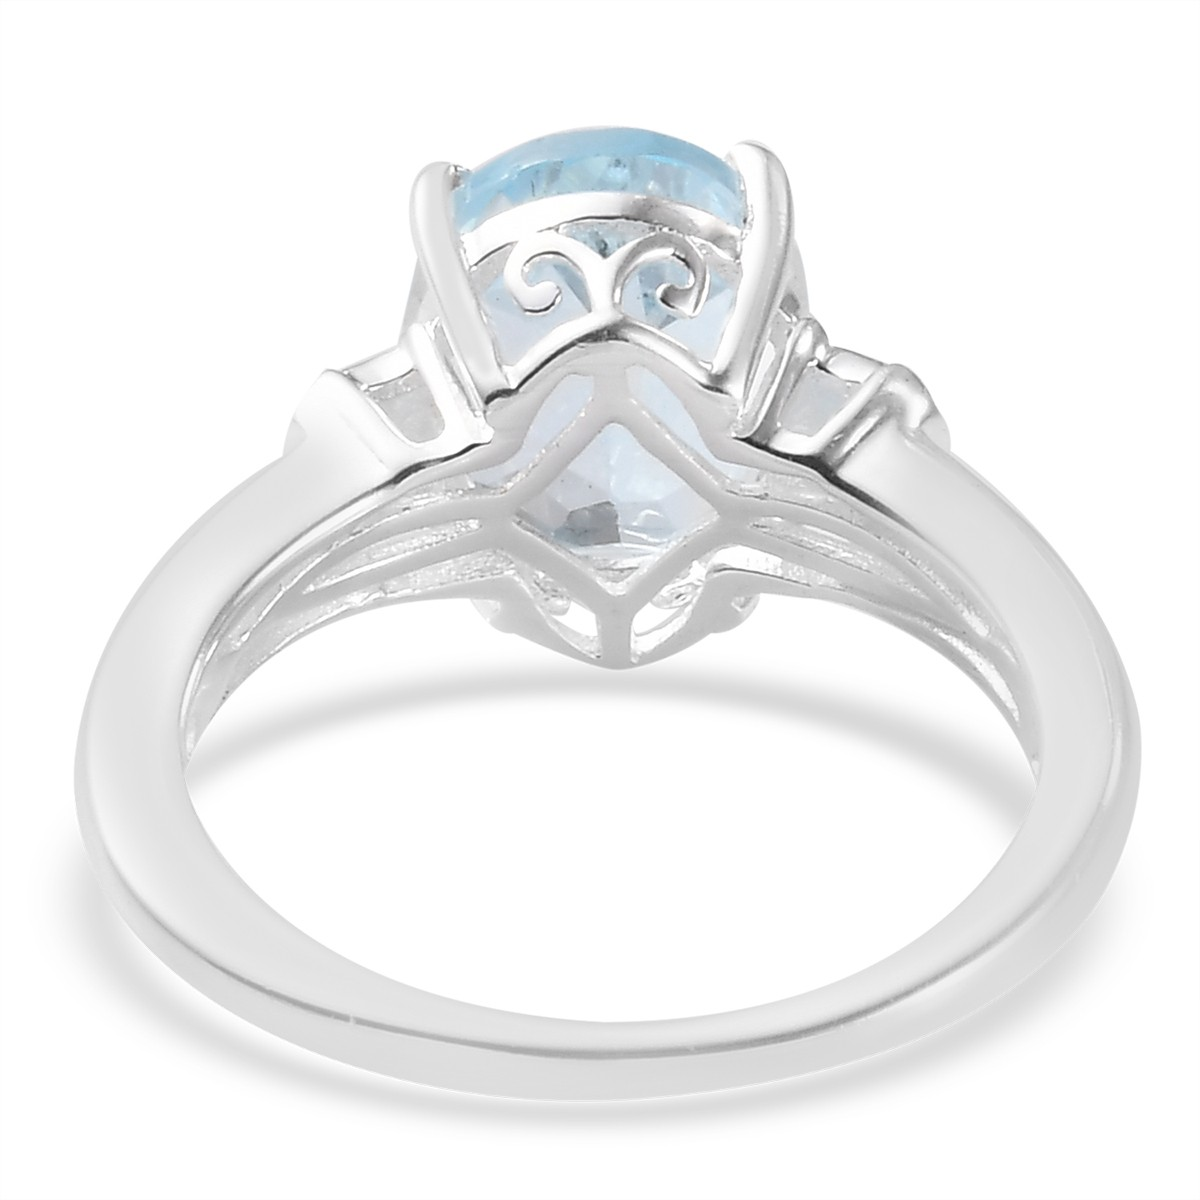 925-Sterling-Silver-Oval-Sky-Blue-Topaz-Solitaire-Promise-Ring-Jewelry thumbnail 5